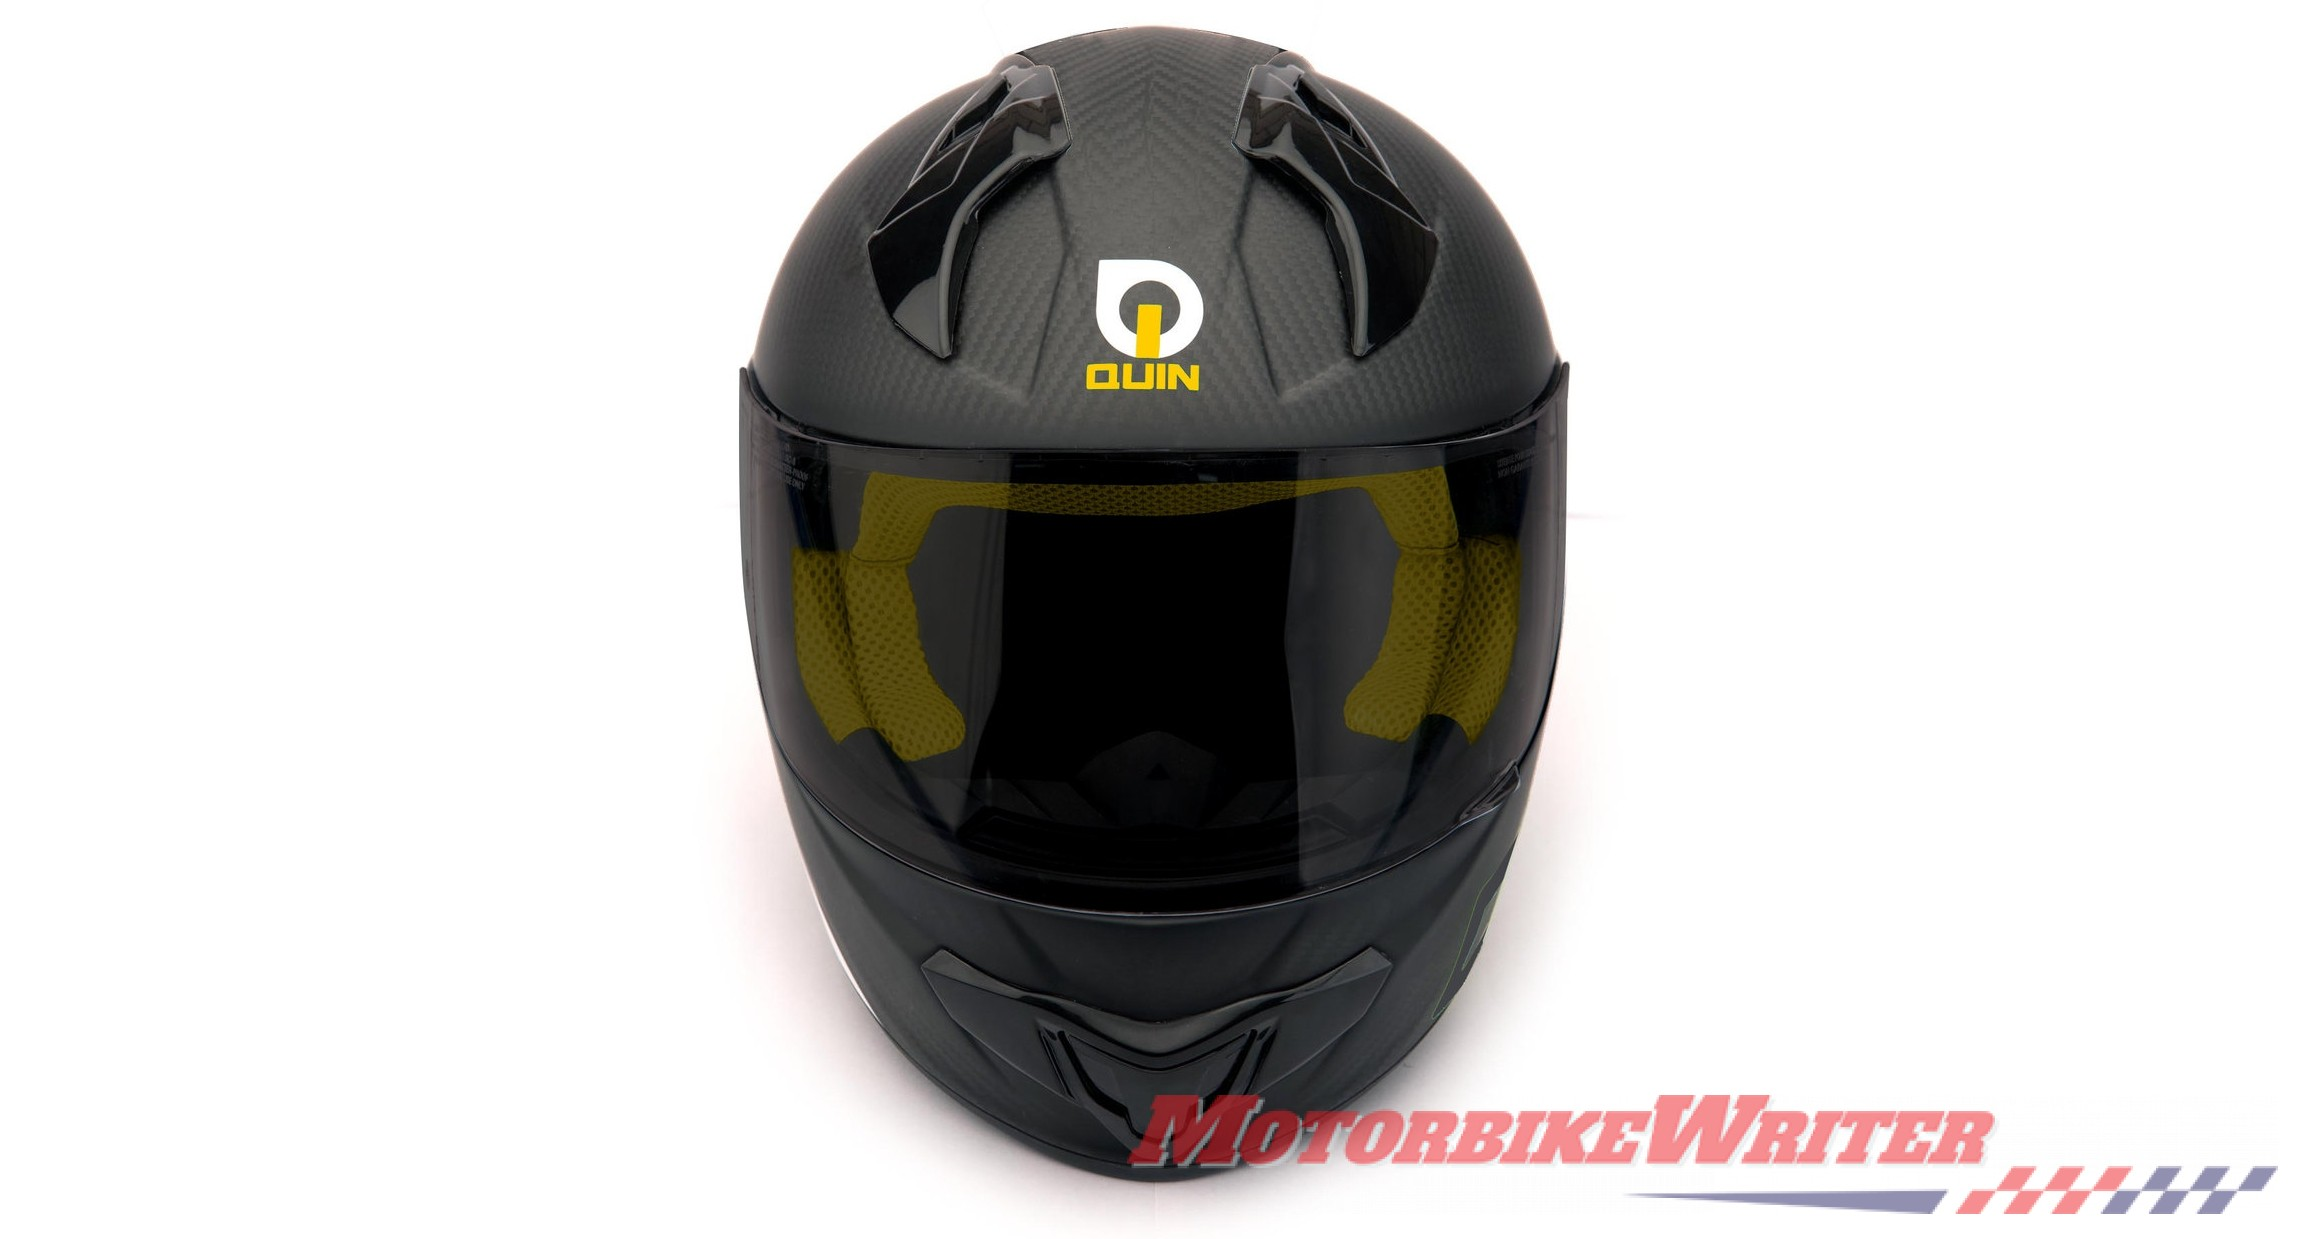 Quin helmets integrated Bluetooth communications